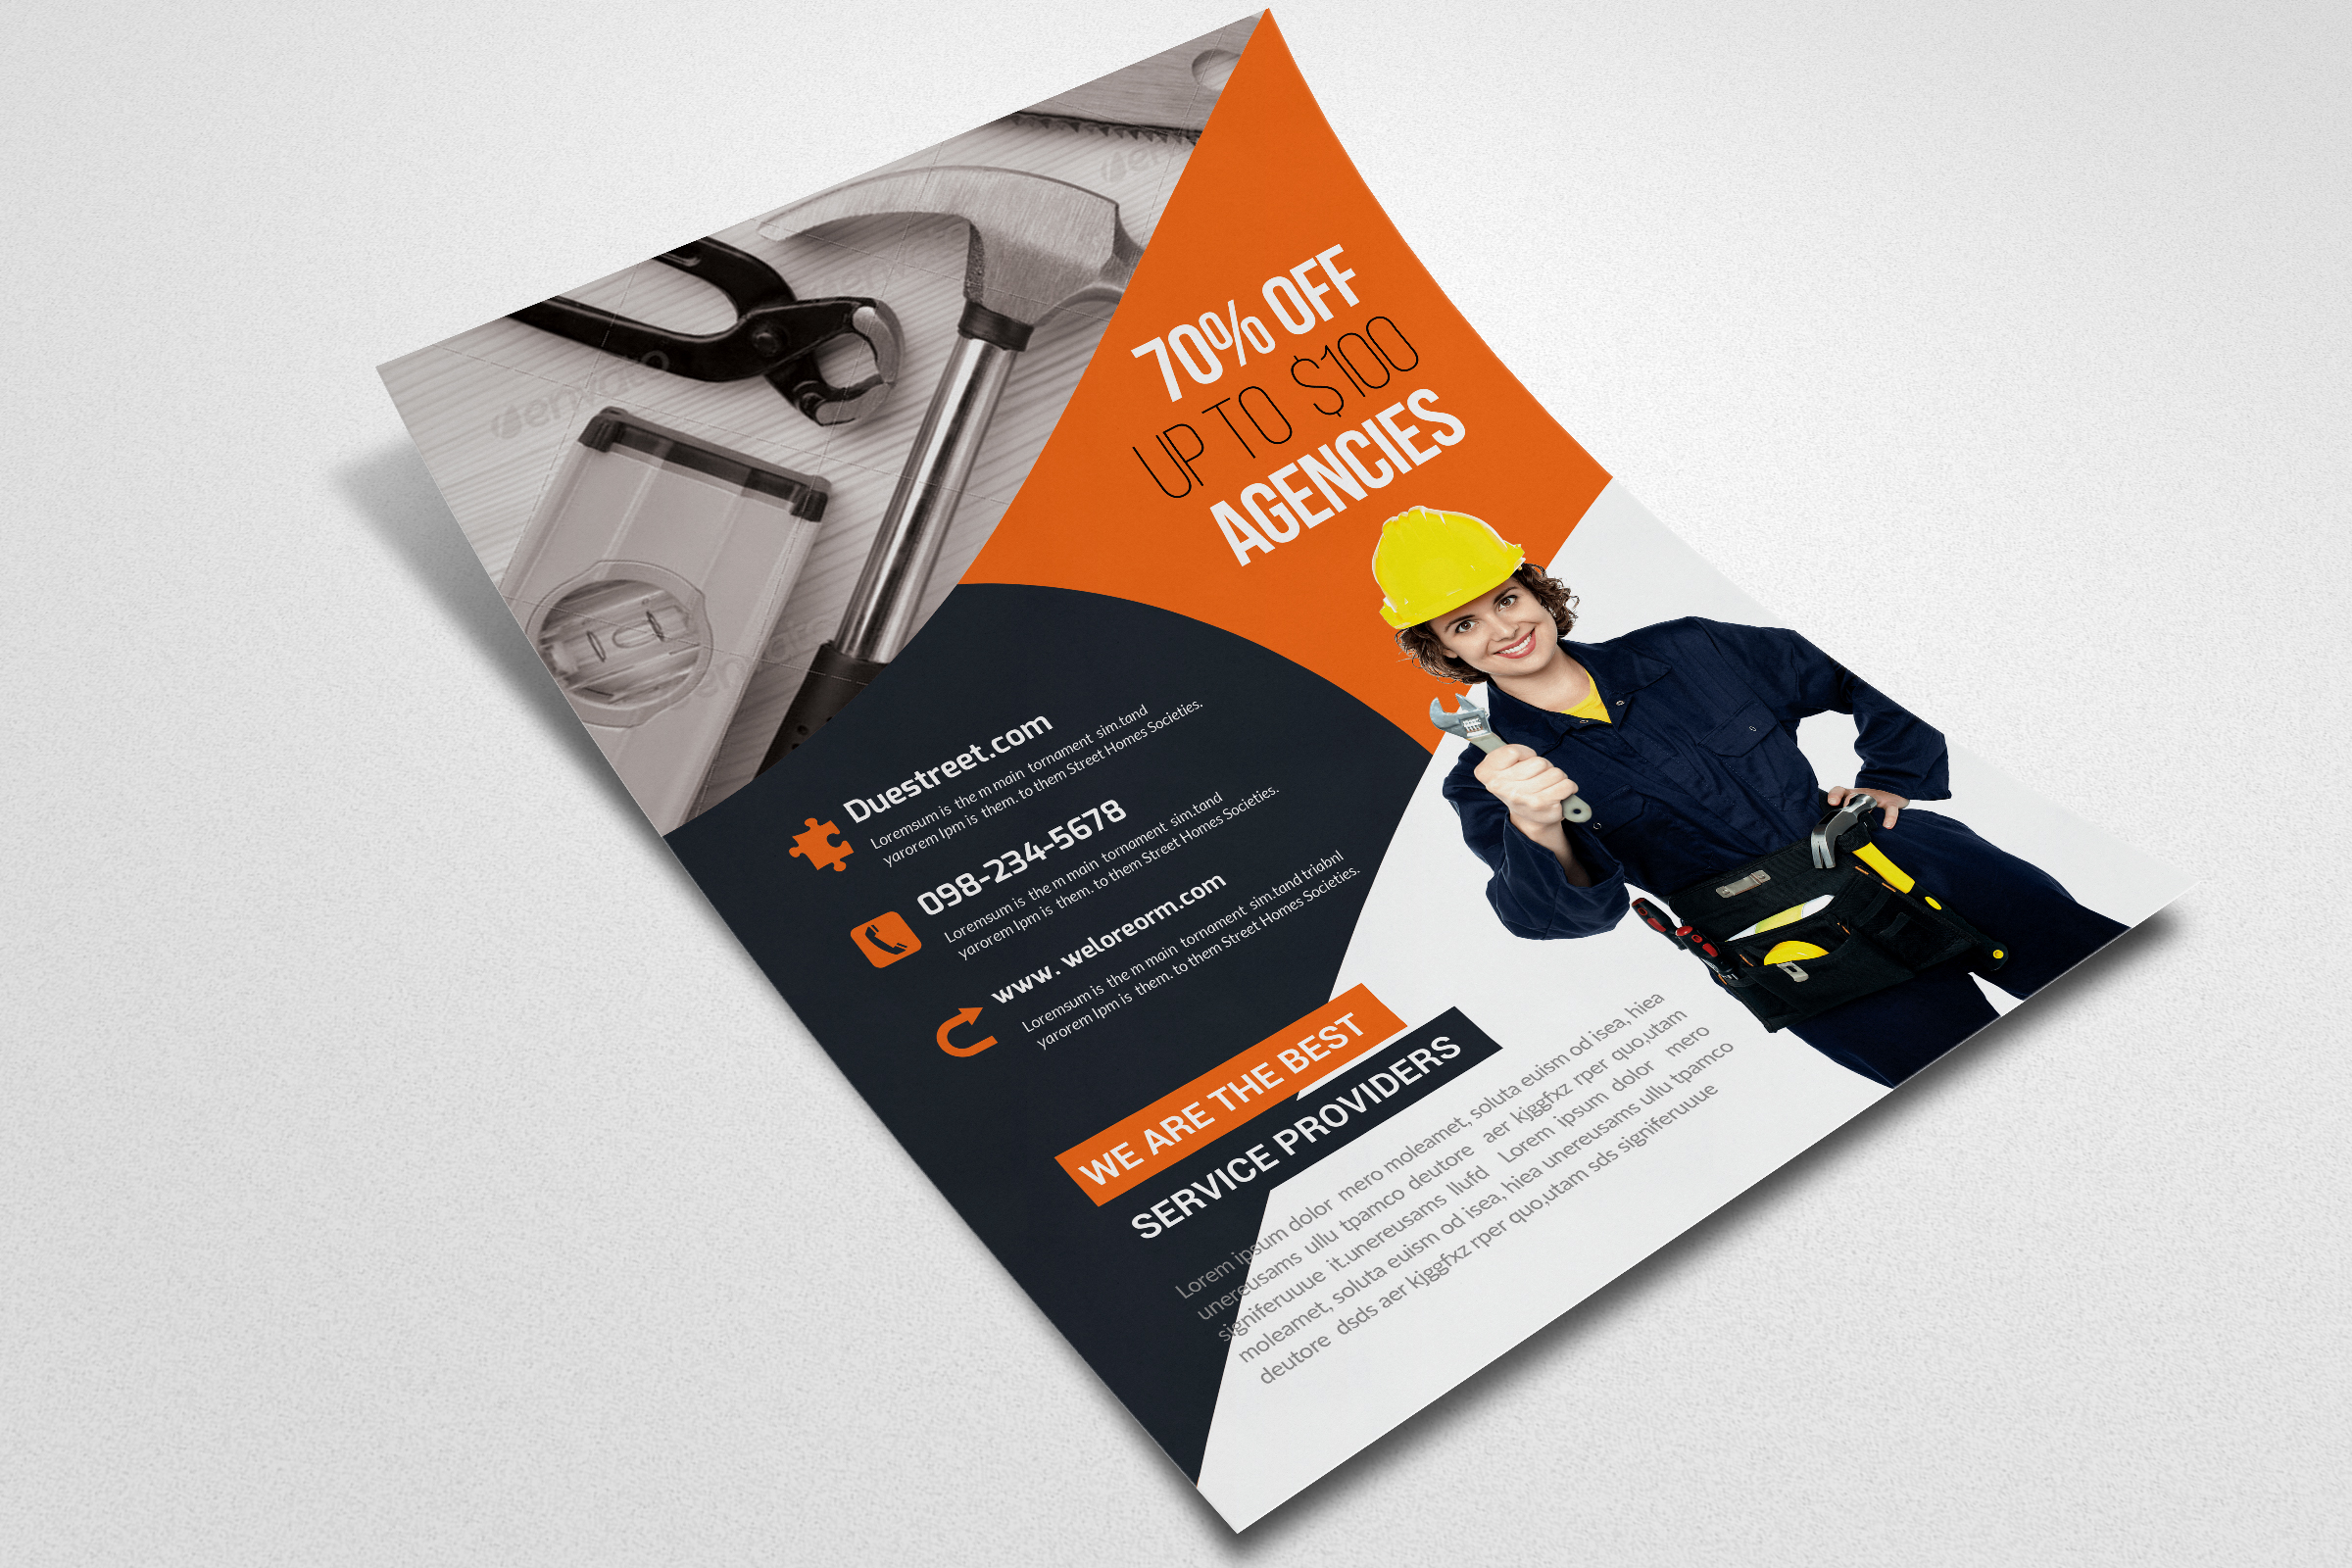 Handyman & Plumber Services Flyer example image 3